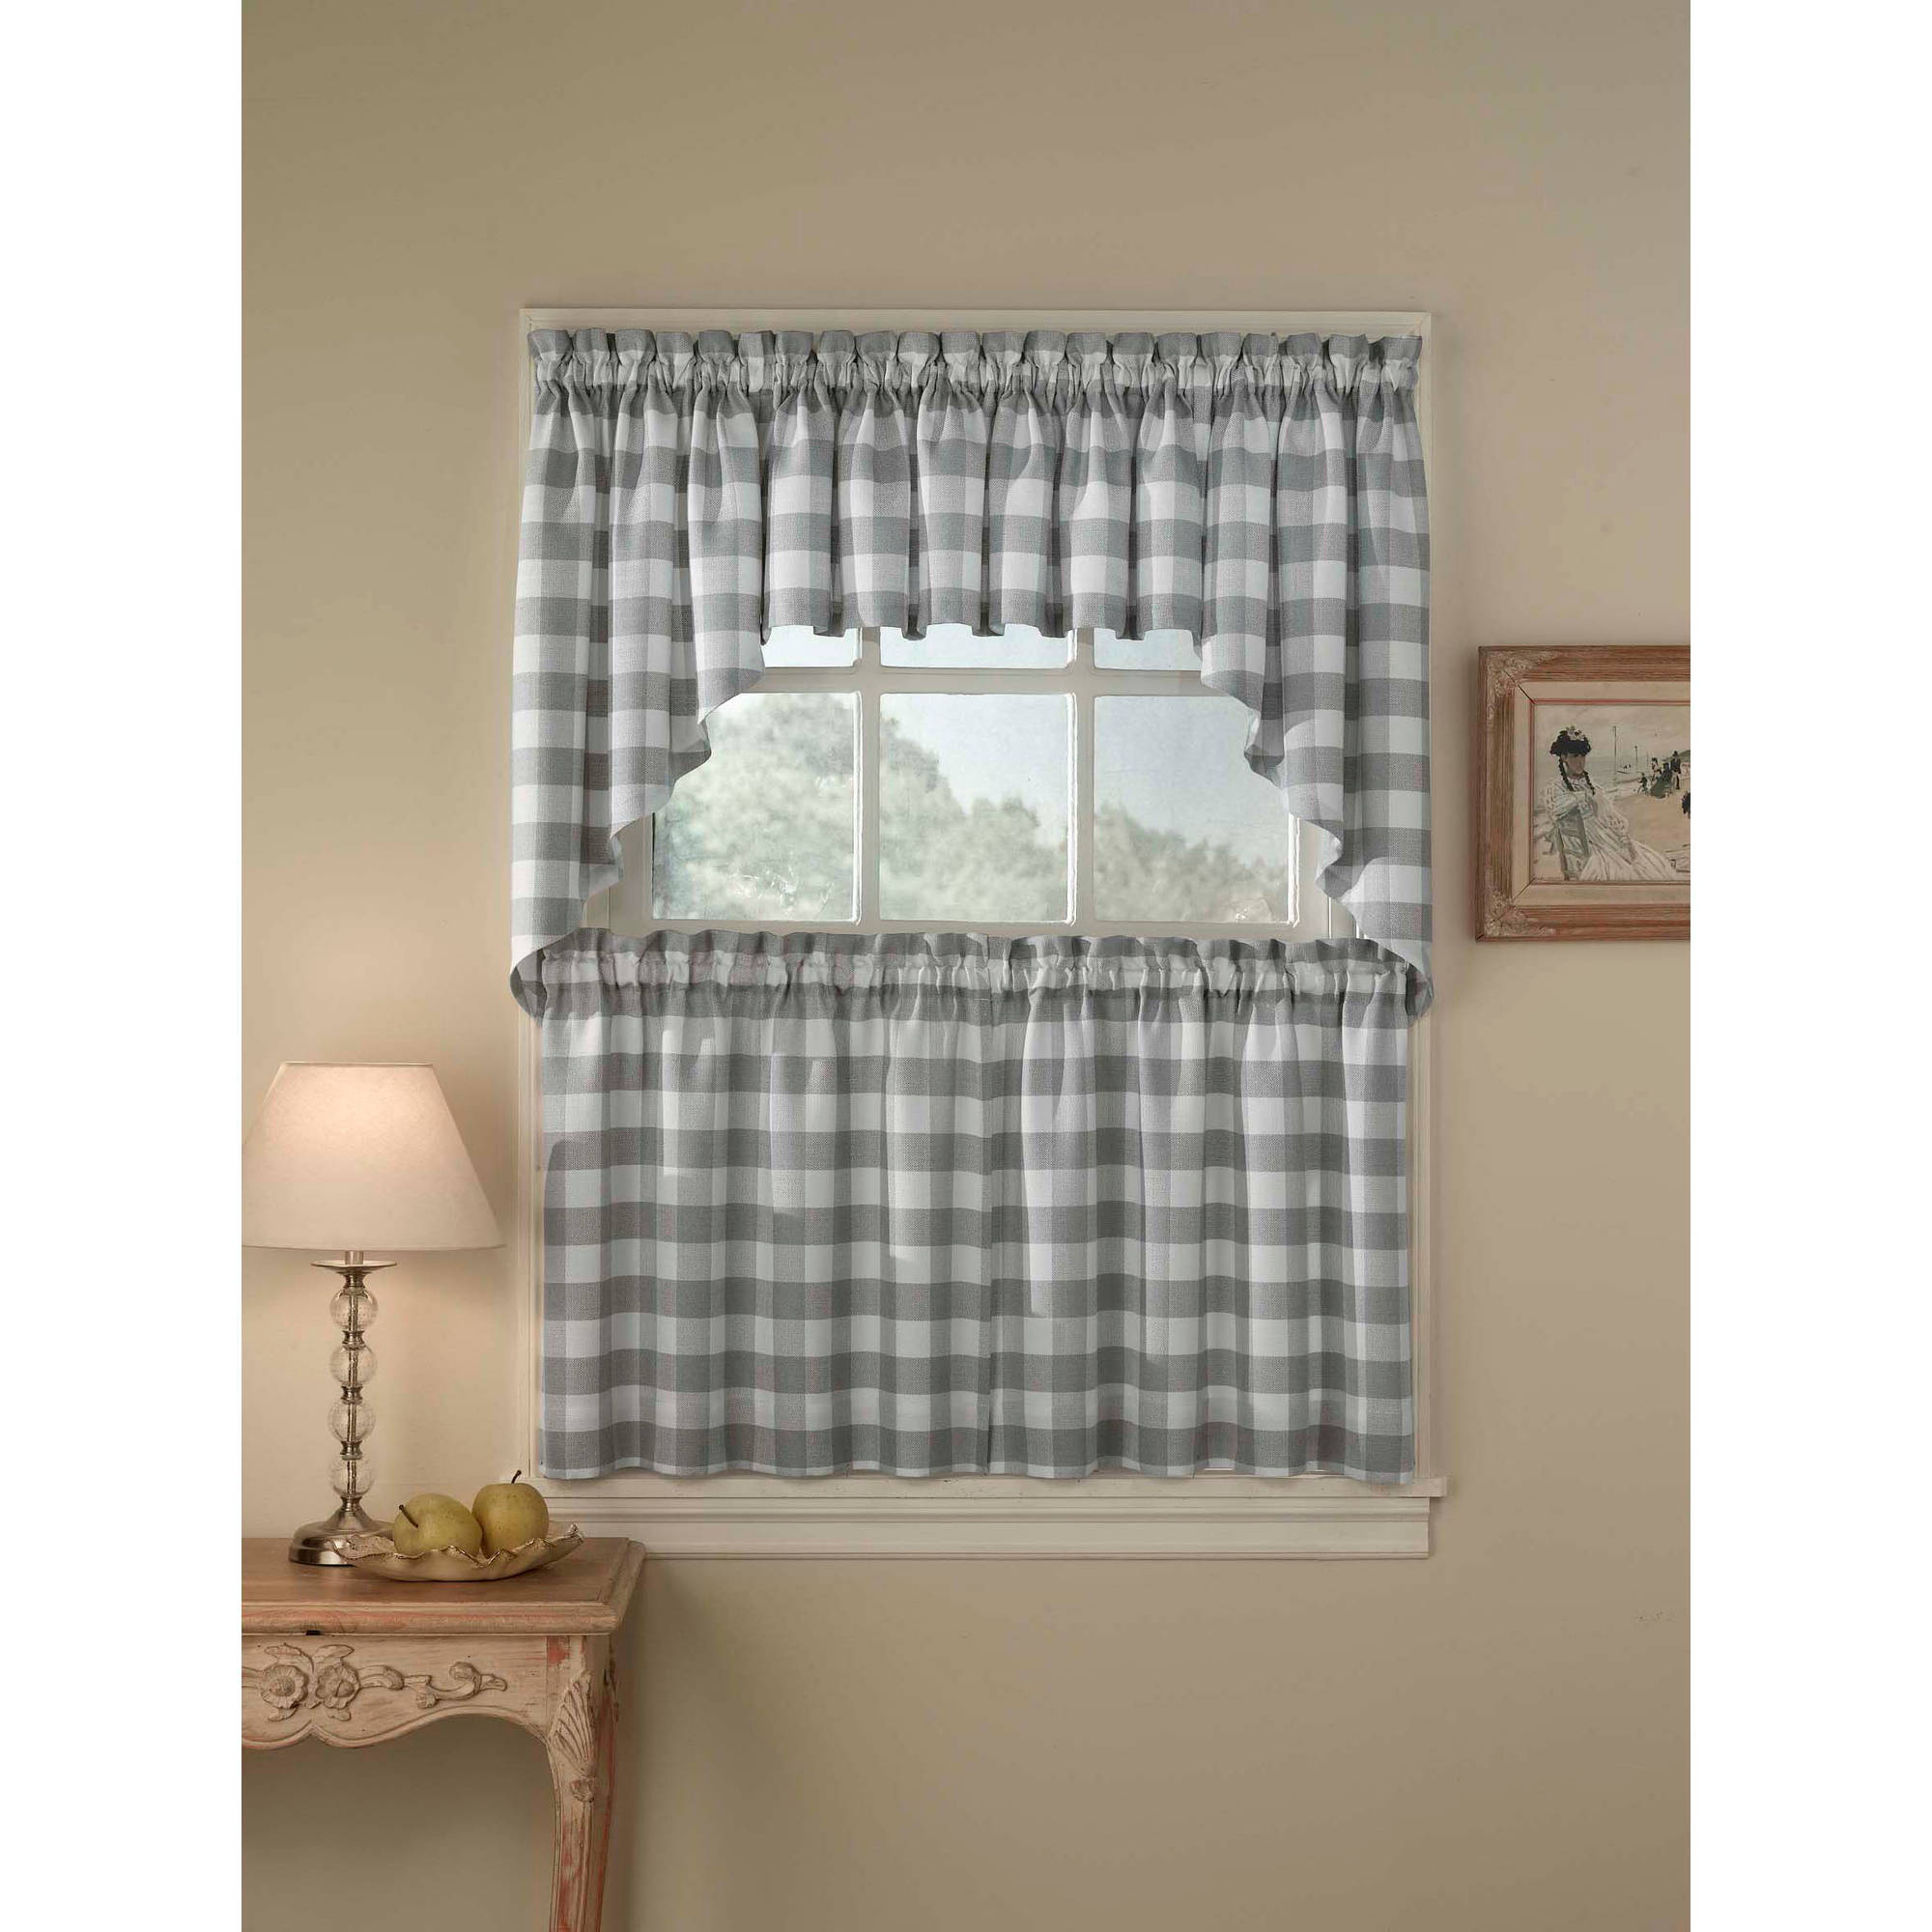 CHF & You Rowan Plaid Tailored Tier Curtain Panel, Set of 2